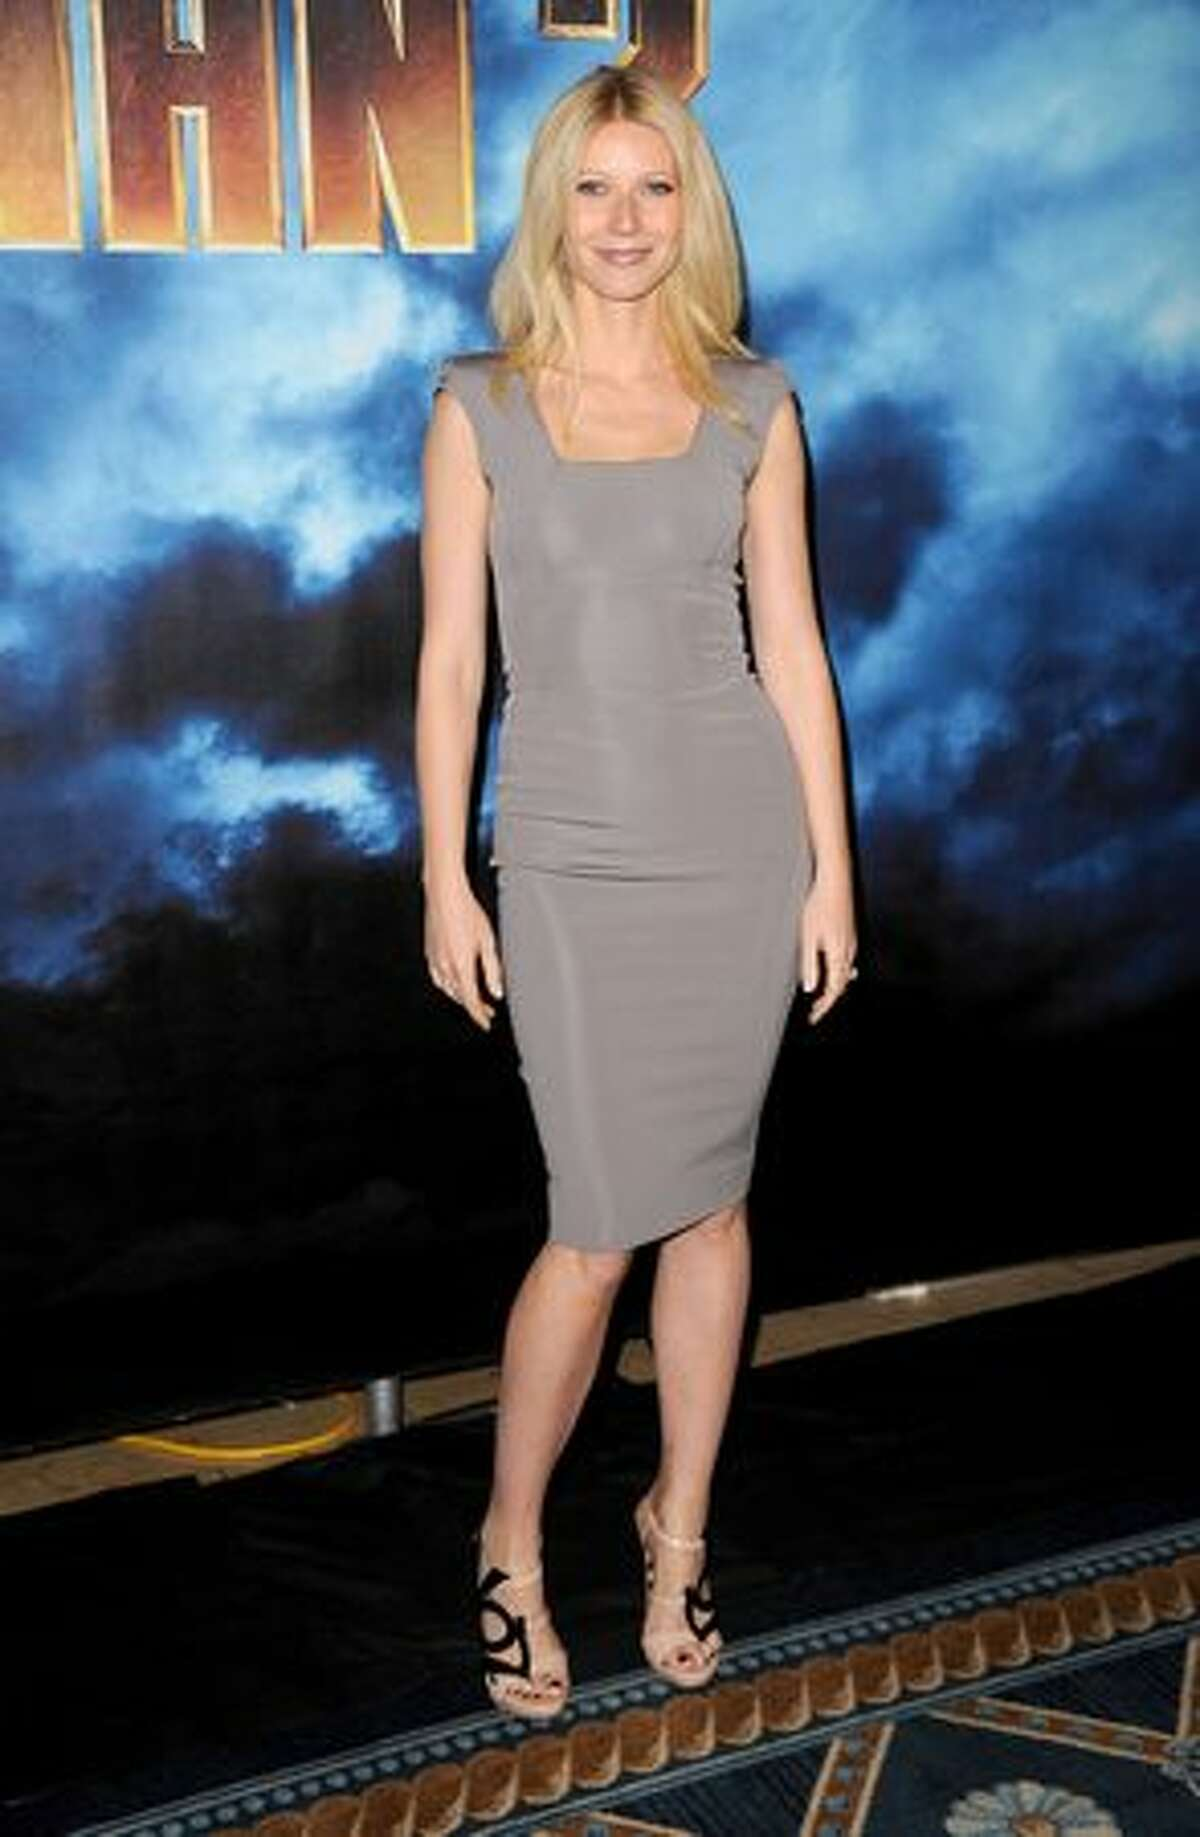 """Actress Gwyneth Paltrow poses during Paramount Pictures & Marvel Entertainment's """"Iron Man 2"""" photo call held at the Four Seasons Hotel on April 23, 2010 in Los Angeles, California."""